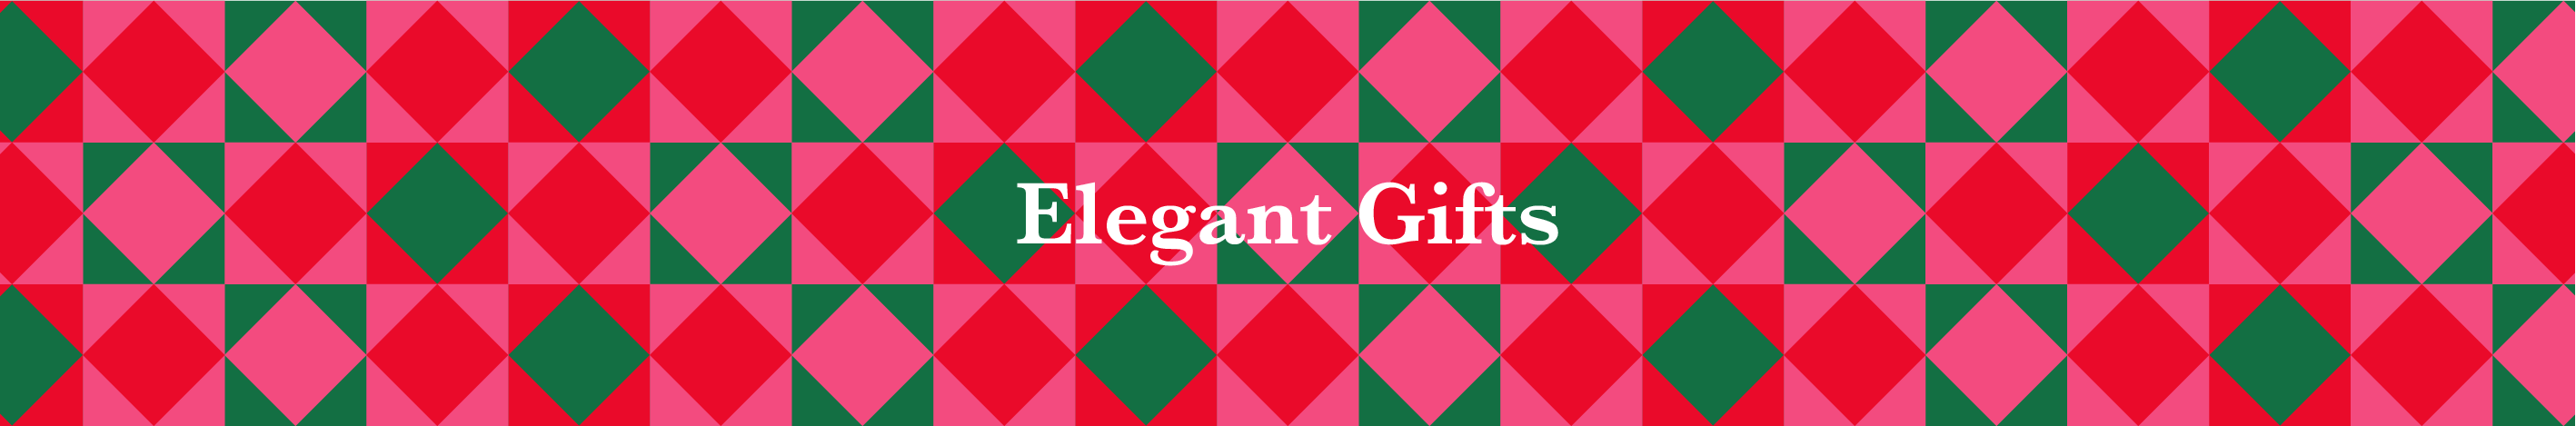 GRIFFI_NATALE_LANDING-PAGE_HOME_ELEGANT-GIFTS.png